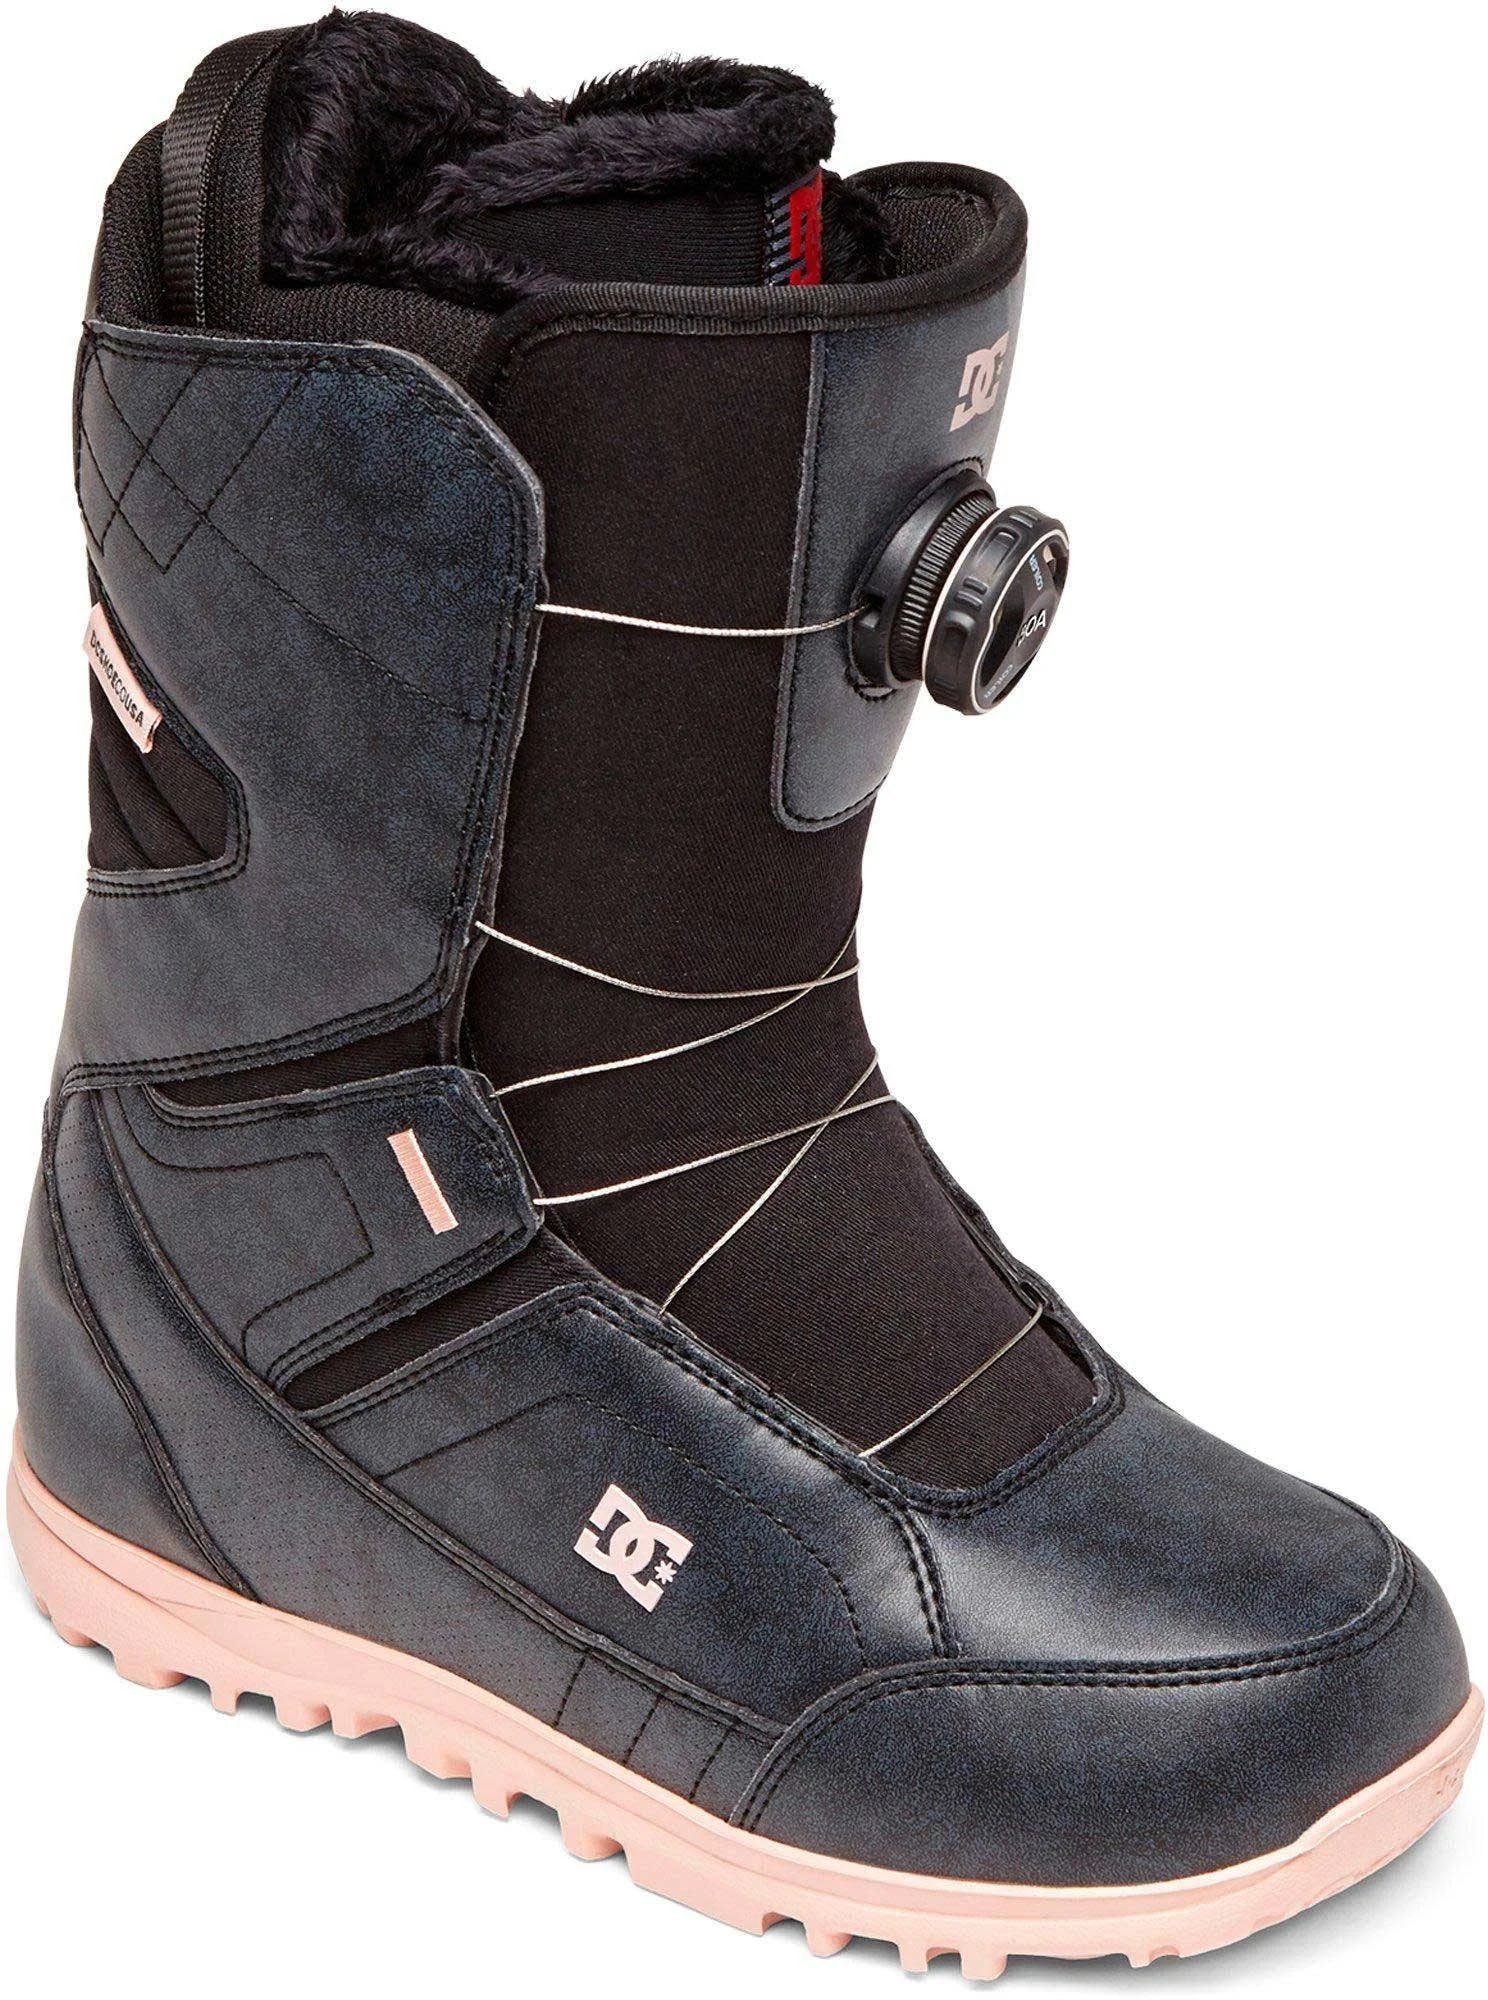 DC Search BOA Snowboard Boots · 2020